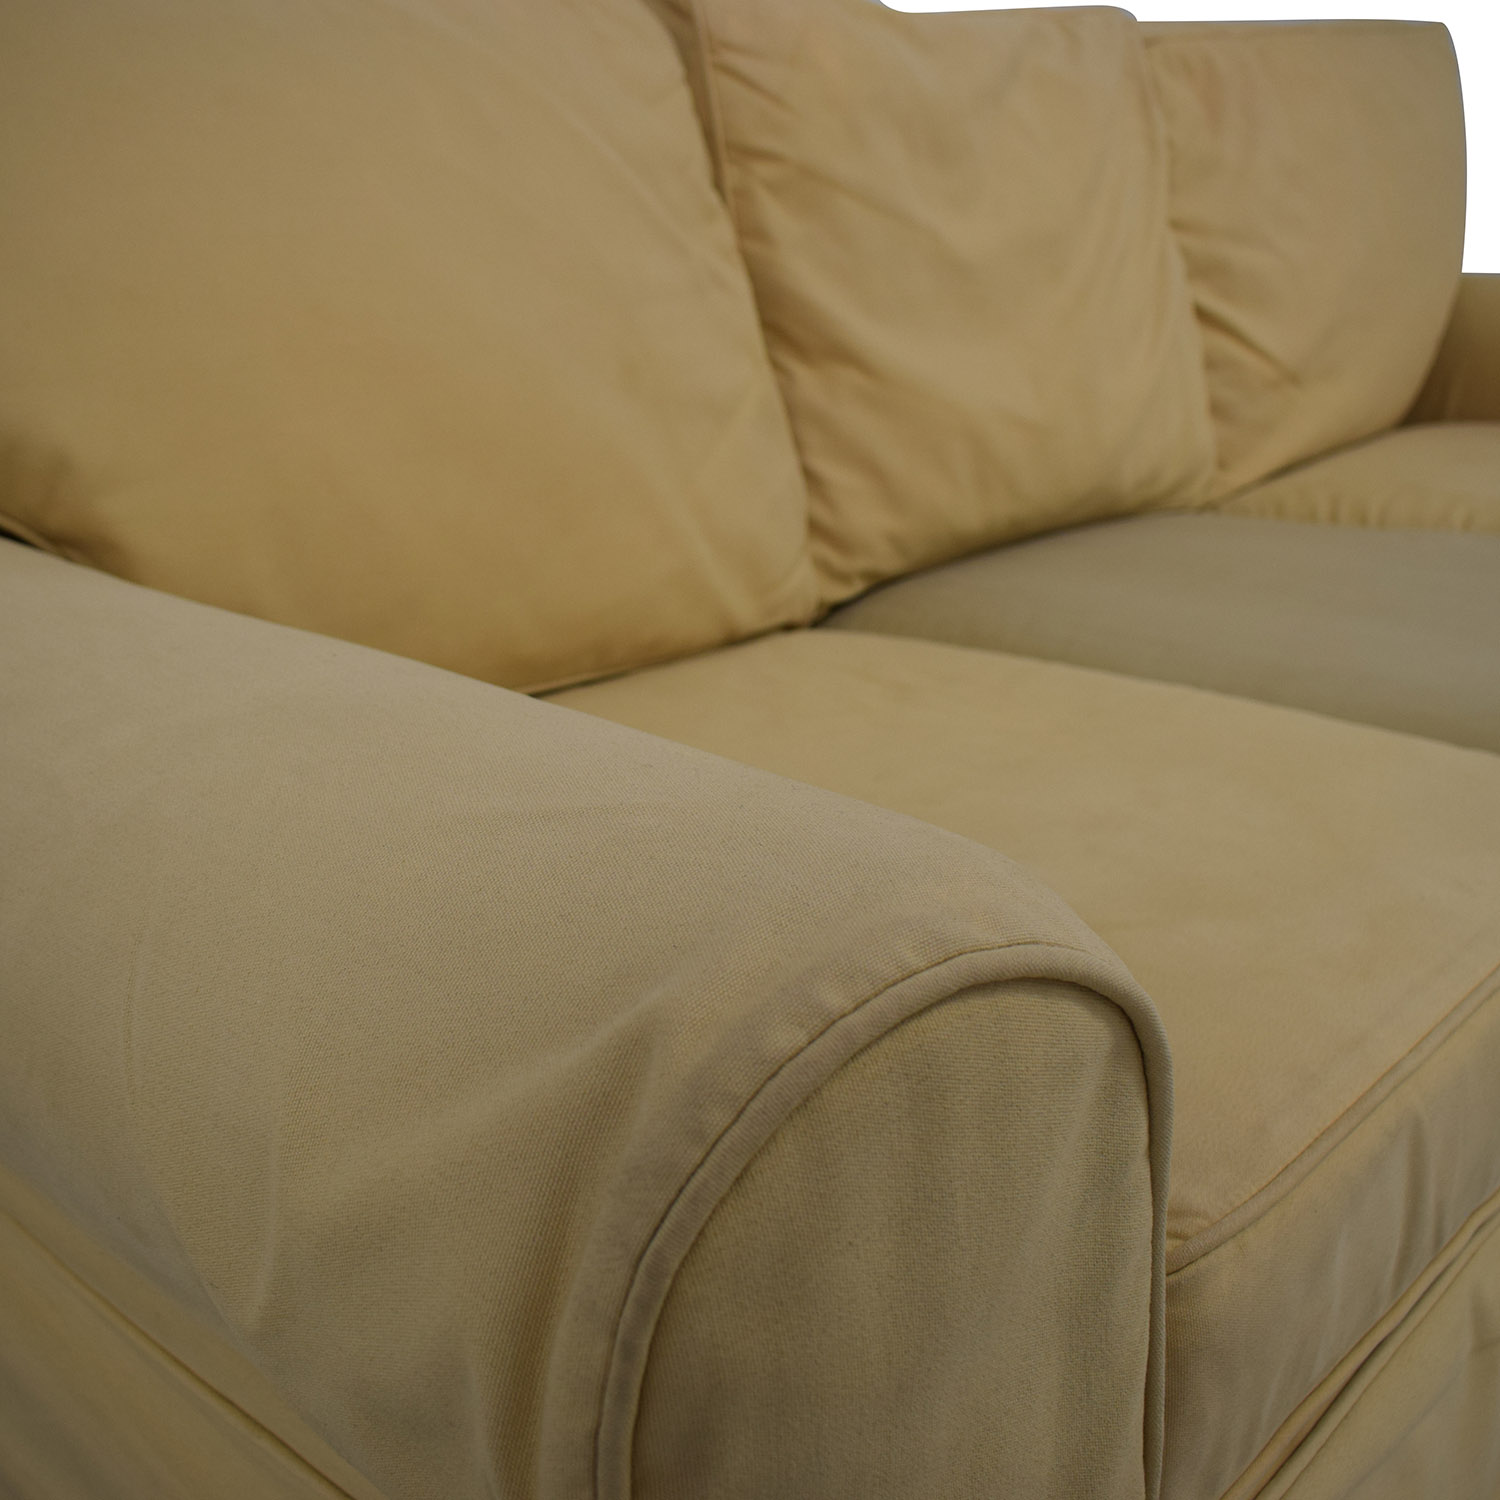 Pottery Barn PB Basic Slipcovered Sofa